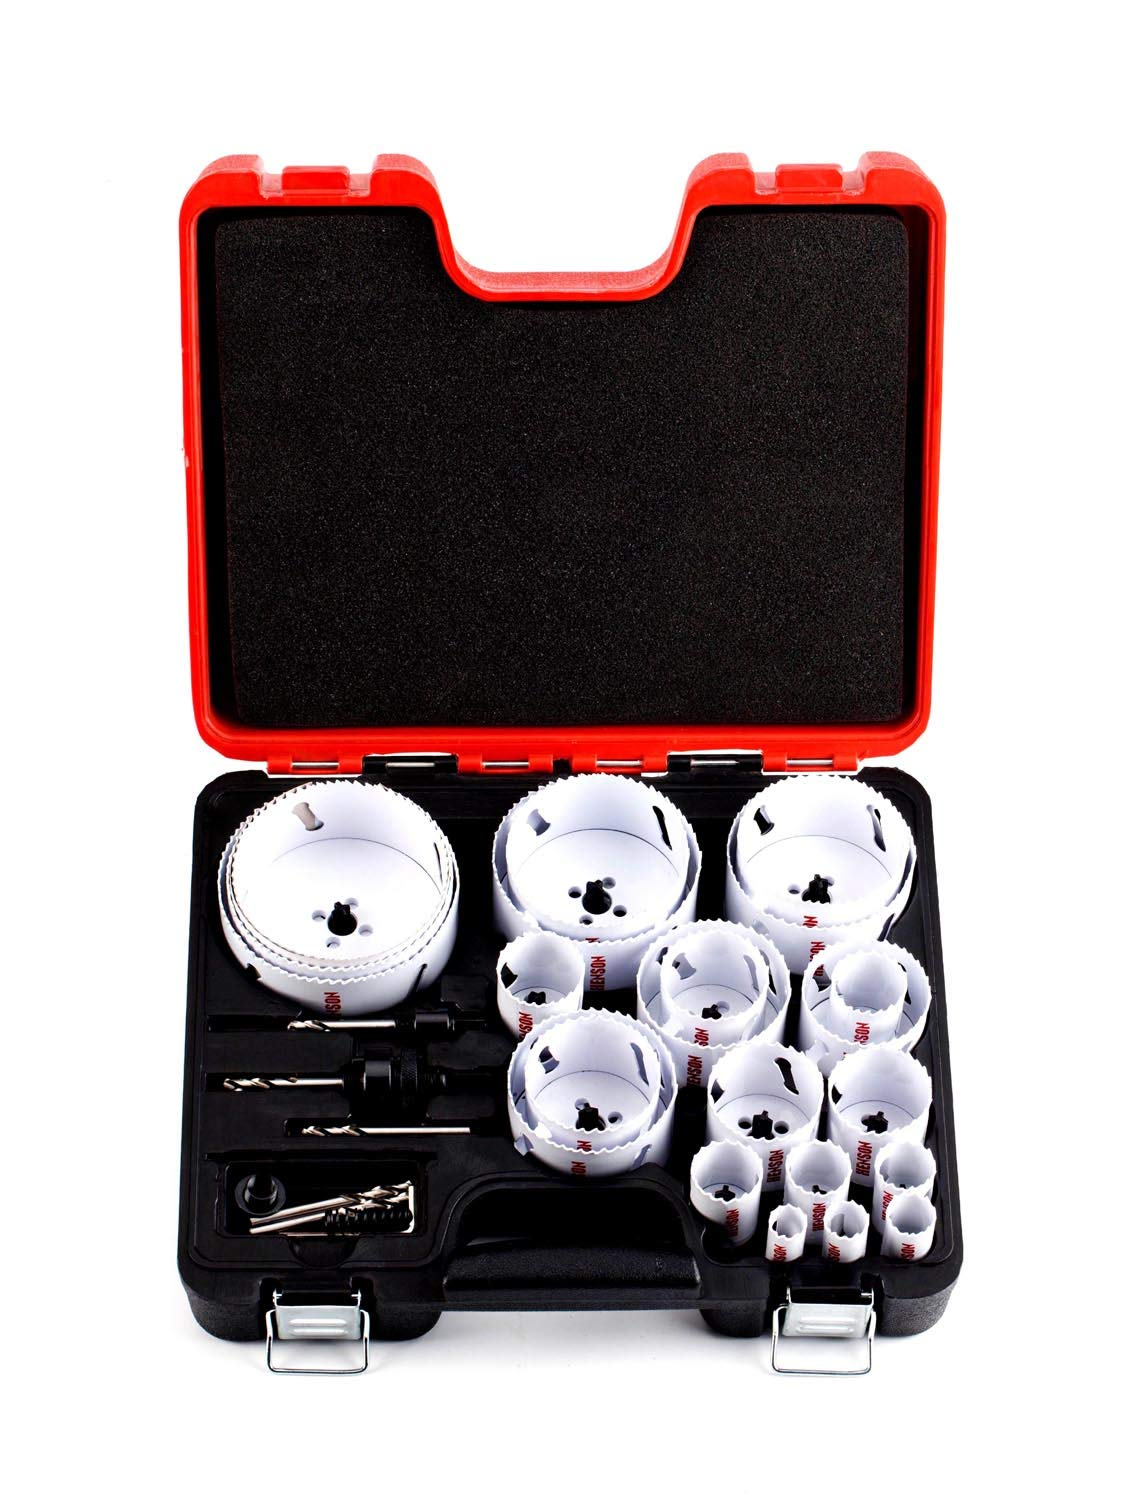 Bi-Metal Hole Saw Kit,30-Piece All Purpose Combination,Sizes Range:3/4'' to 4-3/4'',Increased Cutting Depth Ideal For Wood,Metal,PVC,Aluminum,Steel Tubes,Stainless Steel Sheet By Henson by Henson